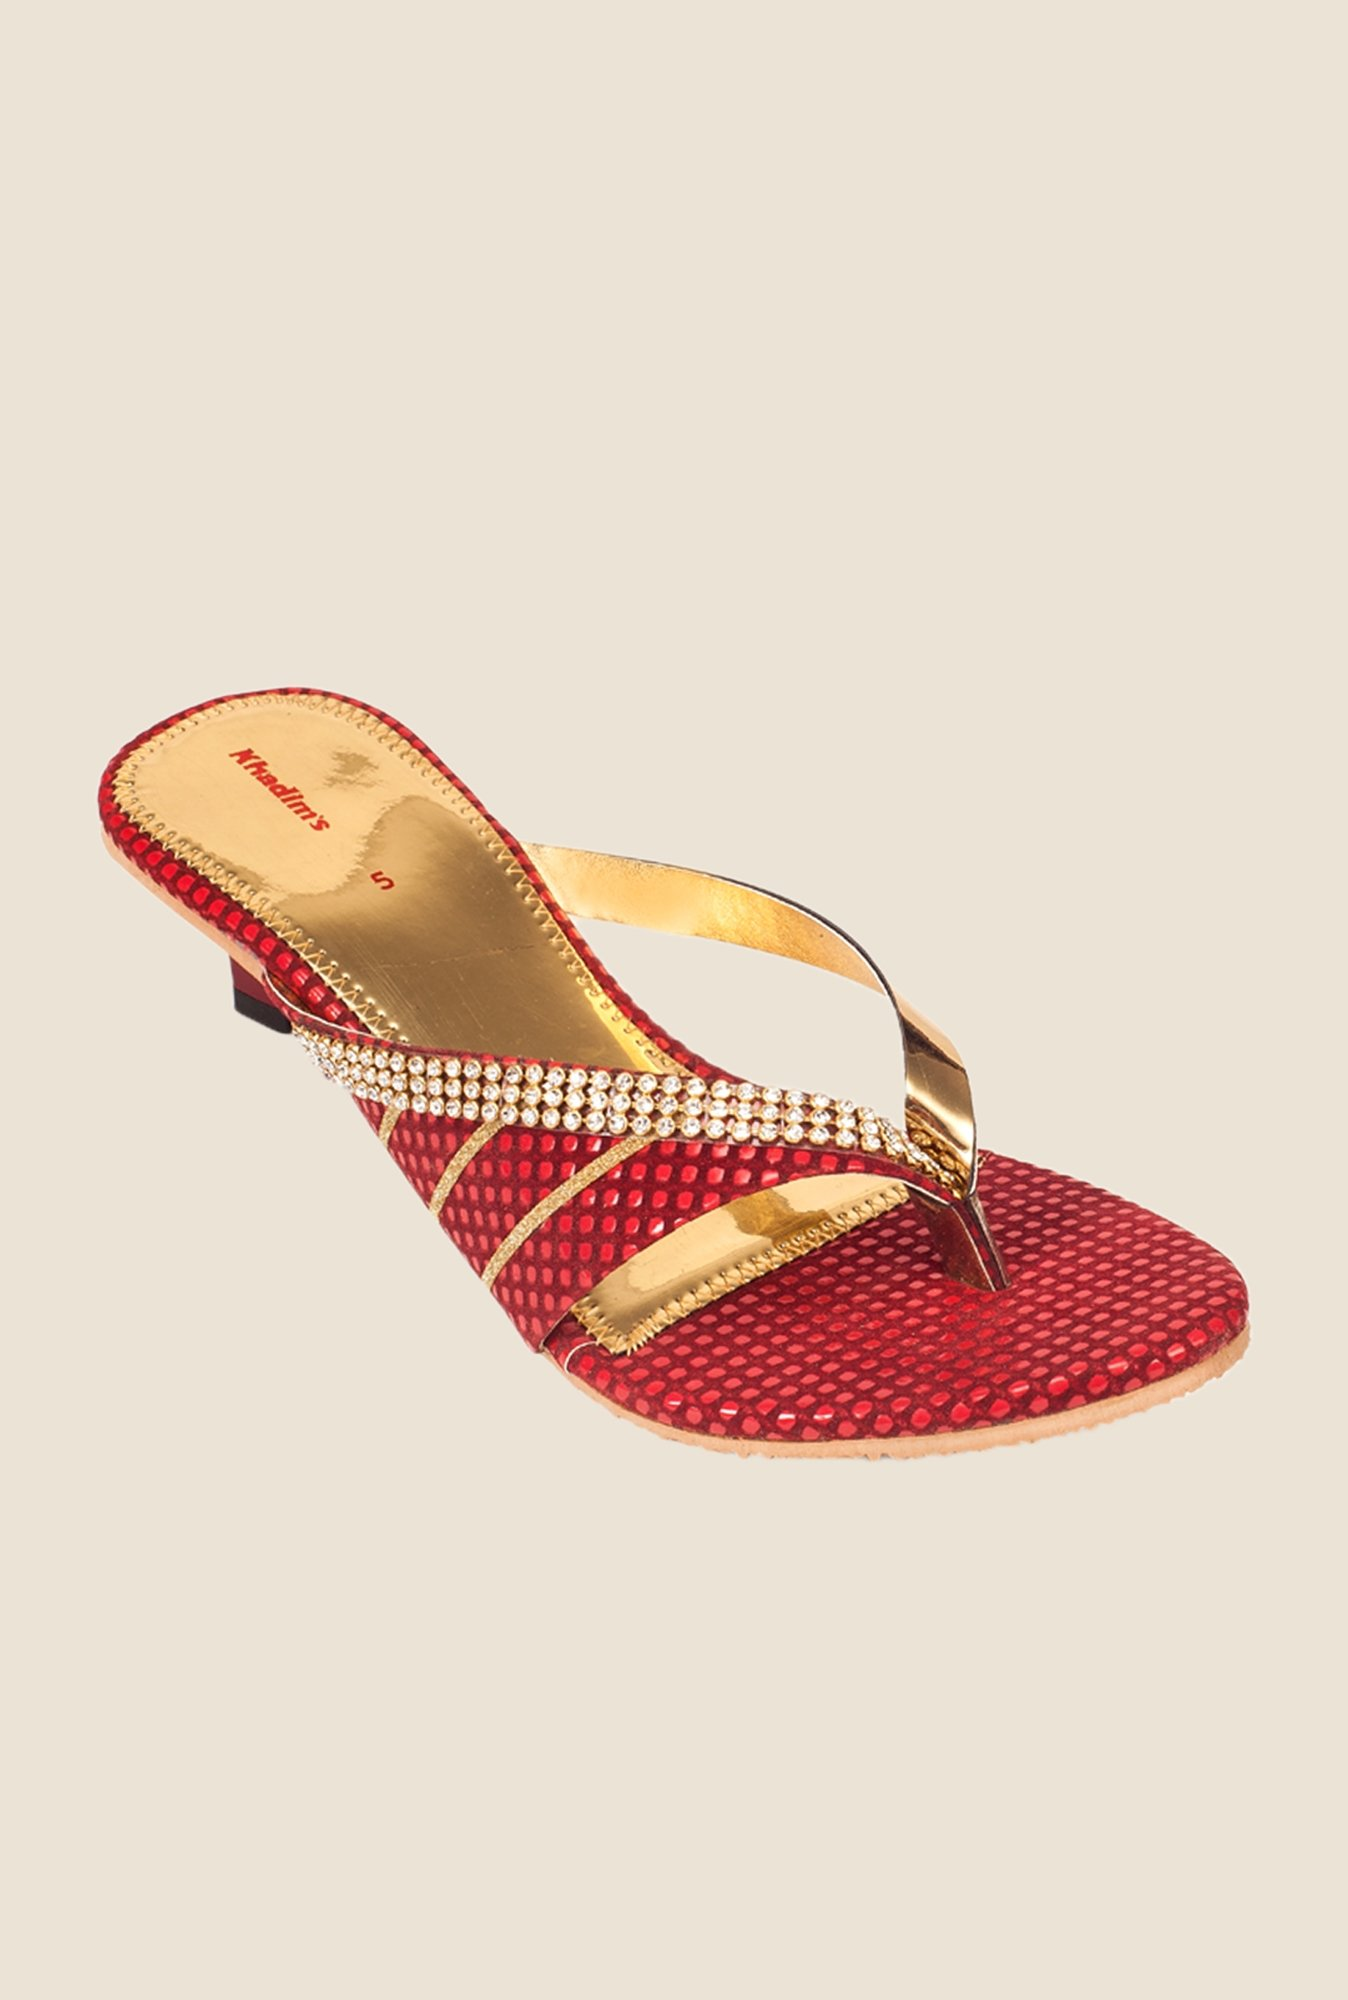 Khadim's Red & Gold Thong Sandals